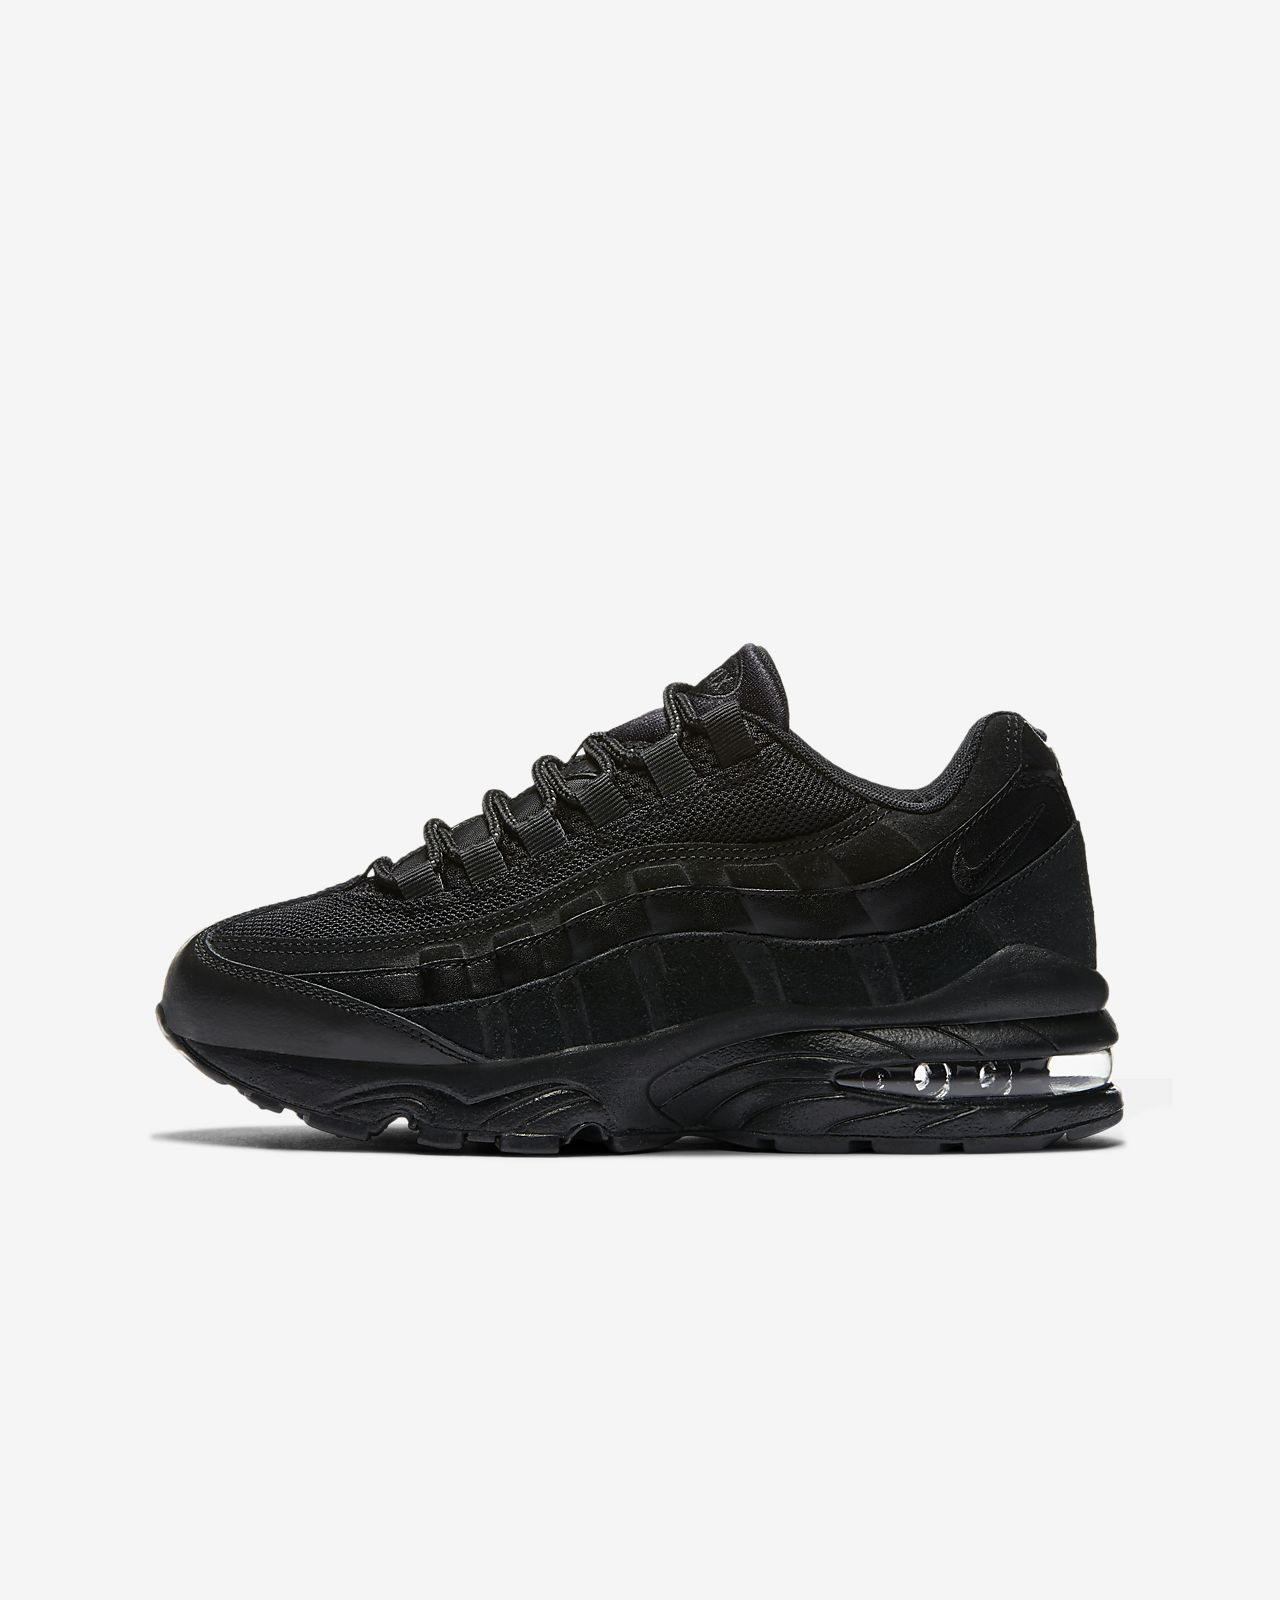 Nike Air Max 95 leather trainers in triple black